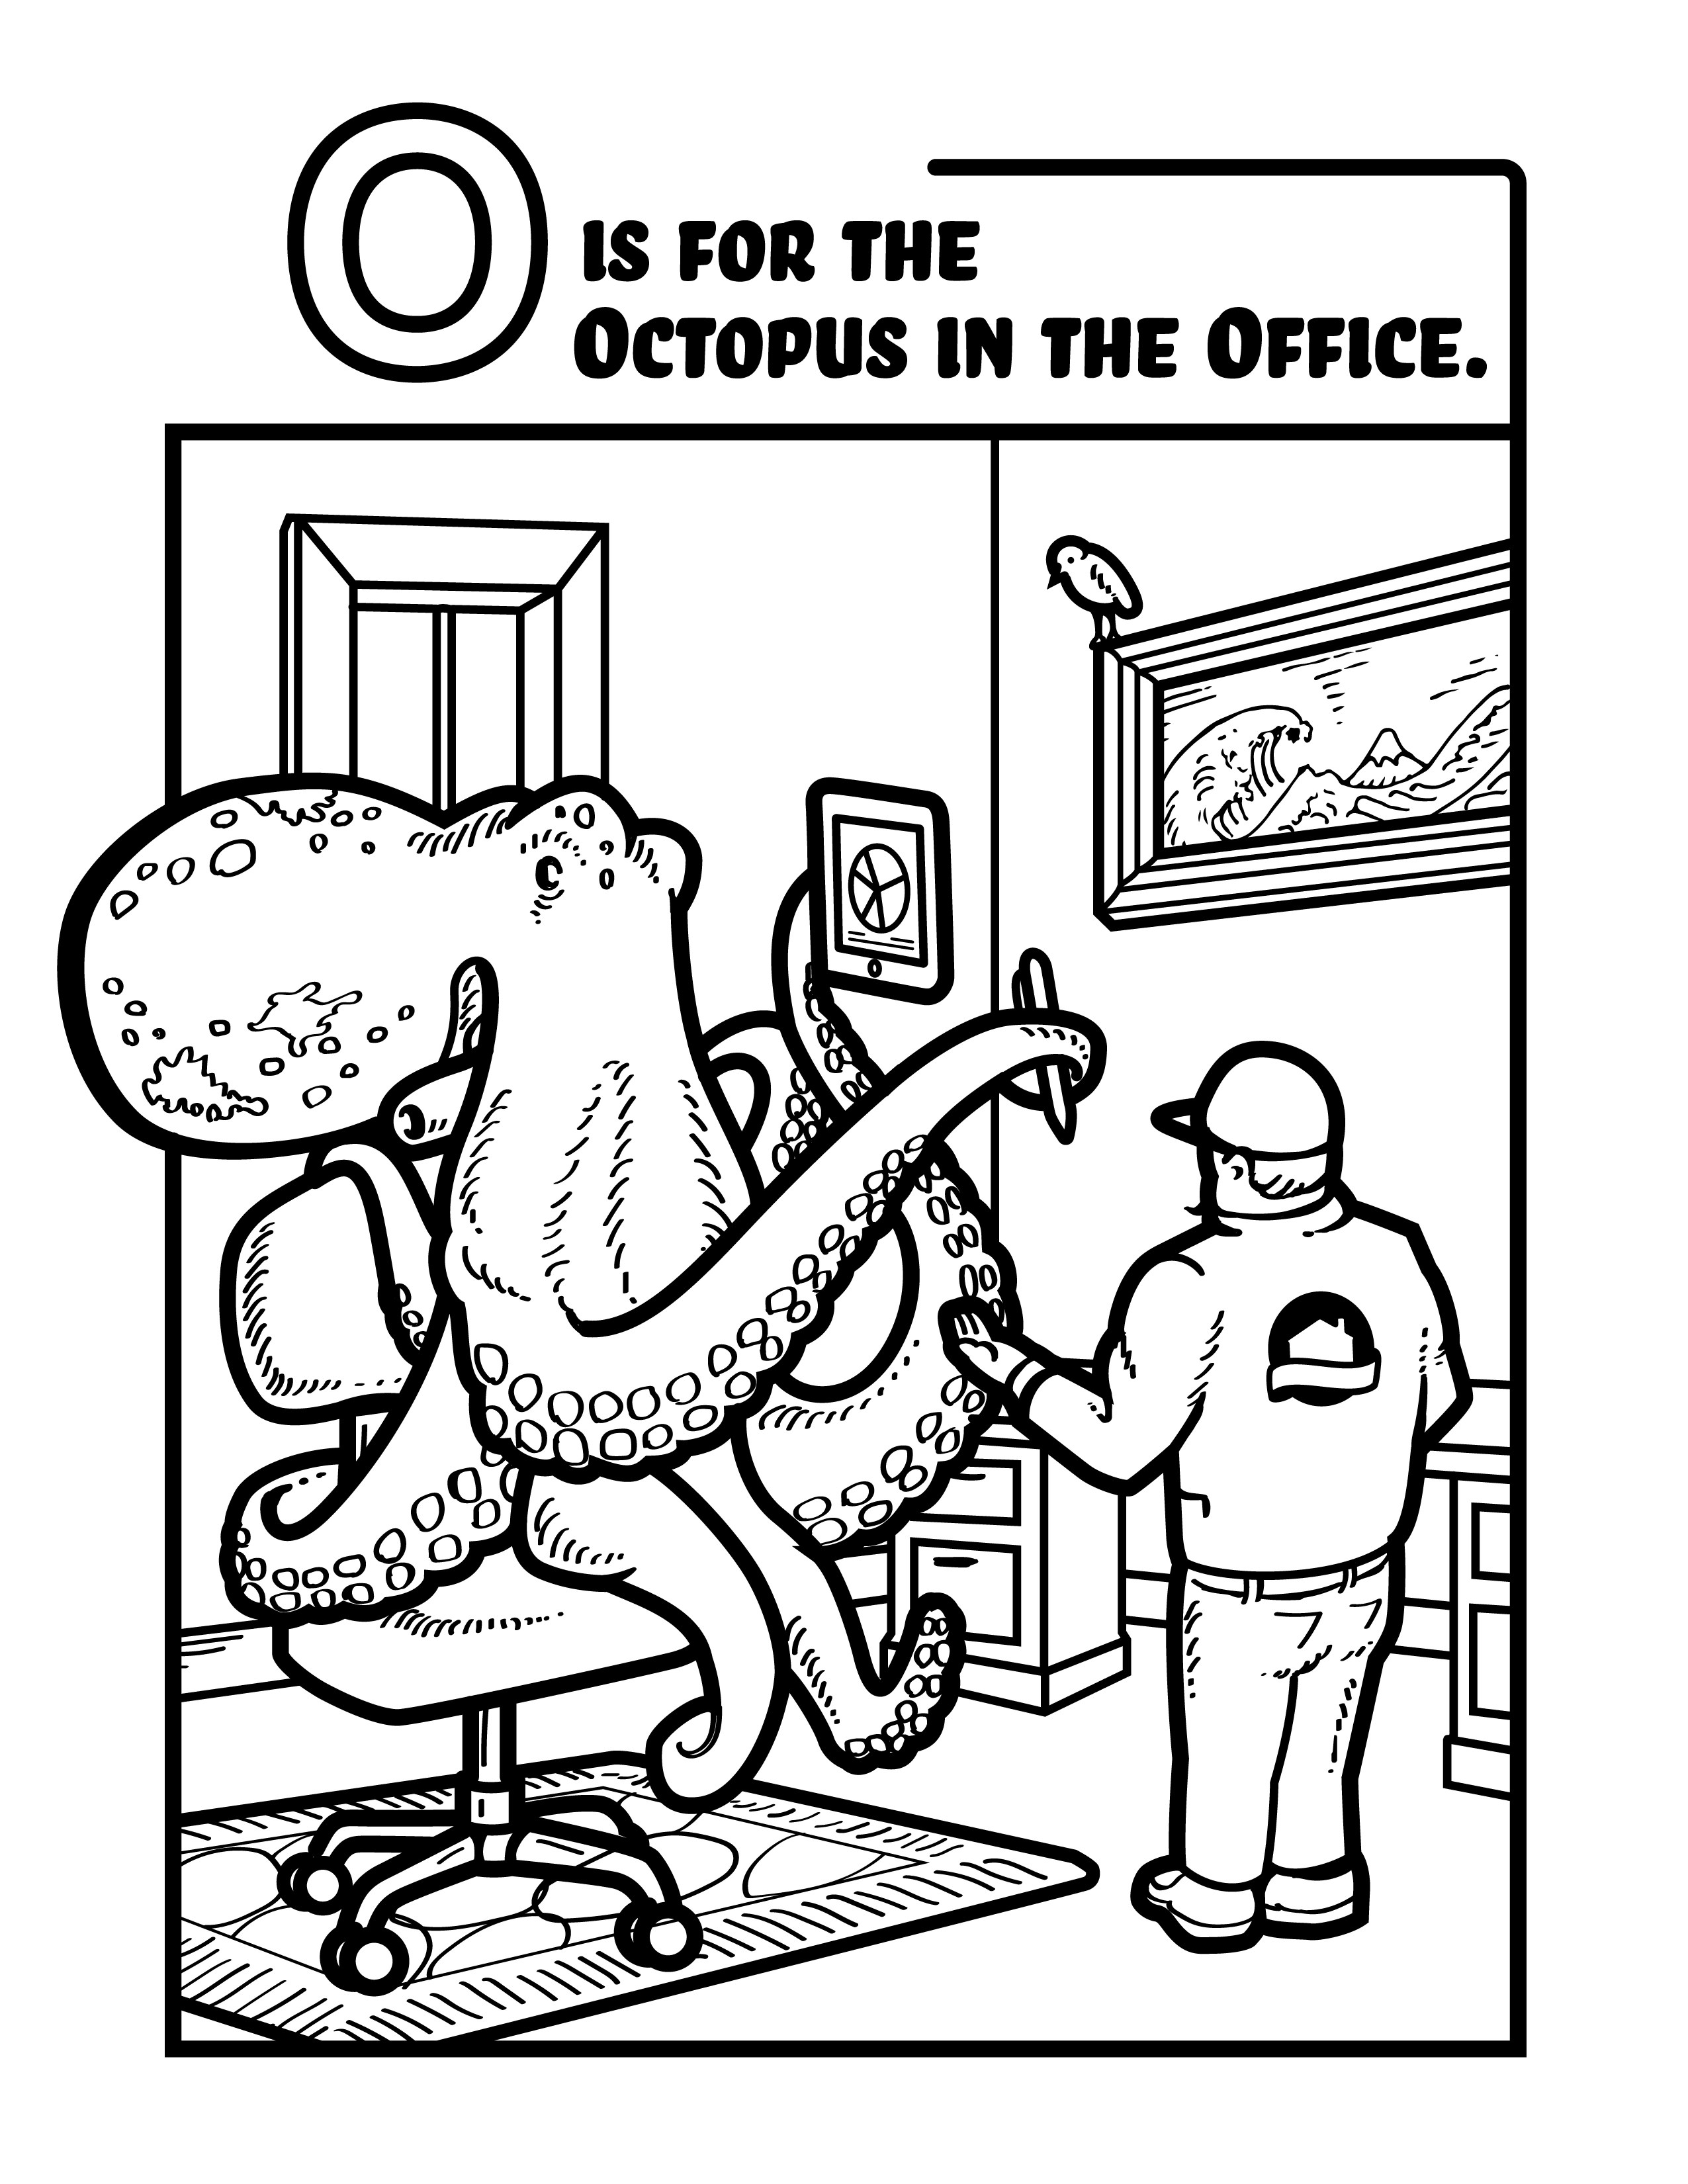 InterNACHI® Octopus in the Office Coloring Sheet